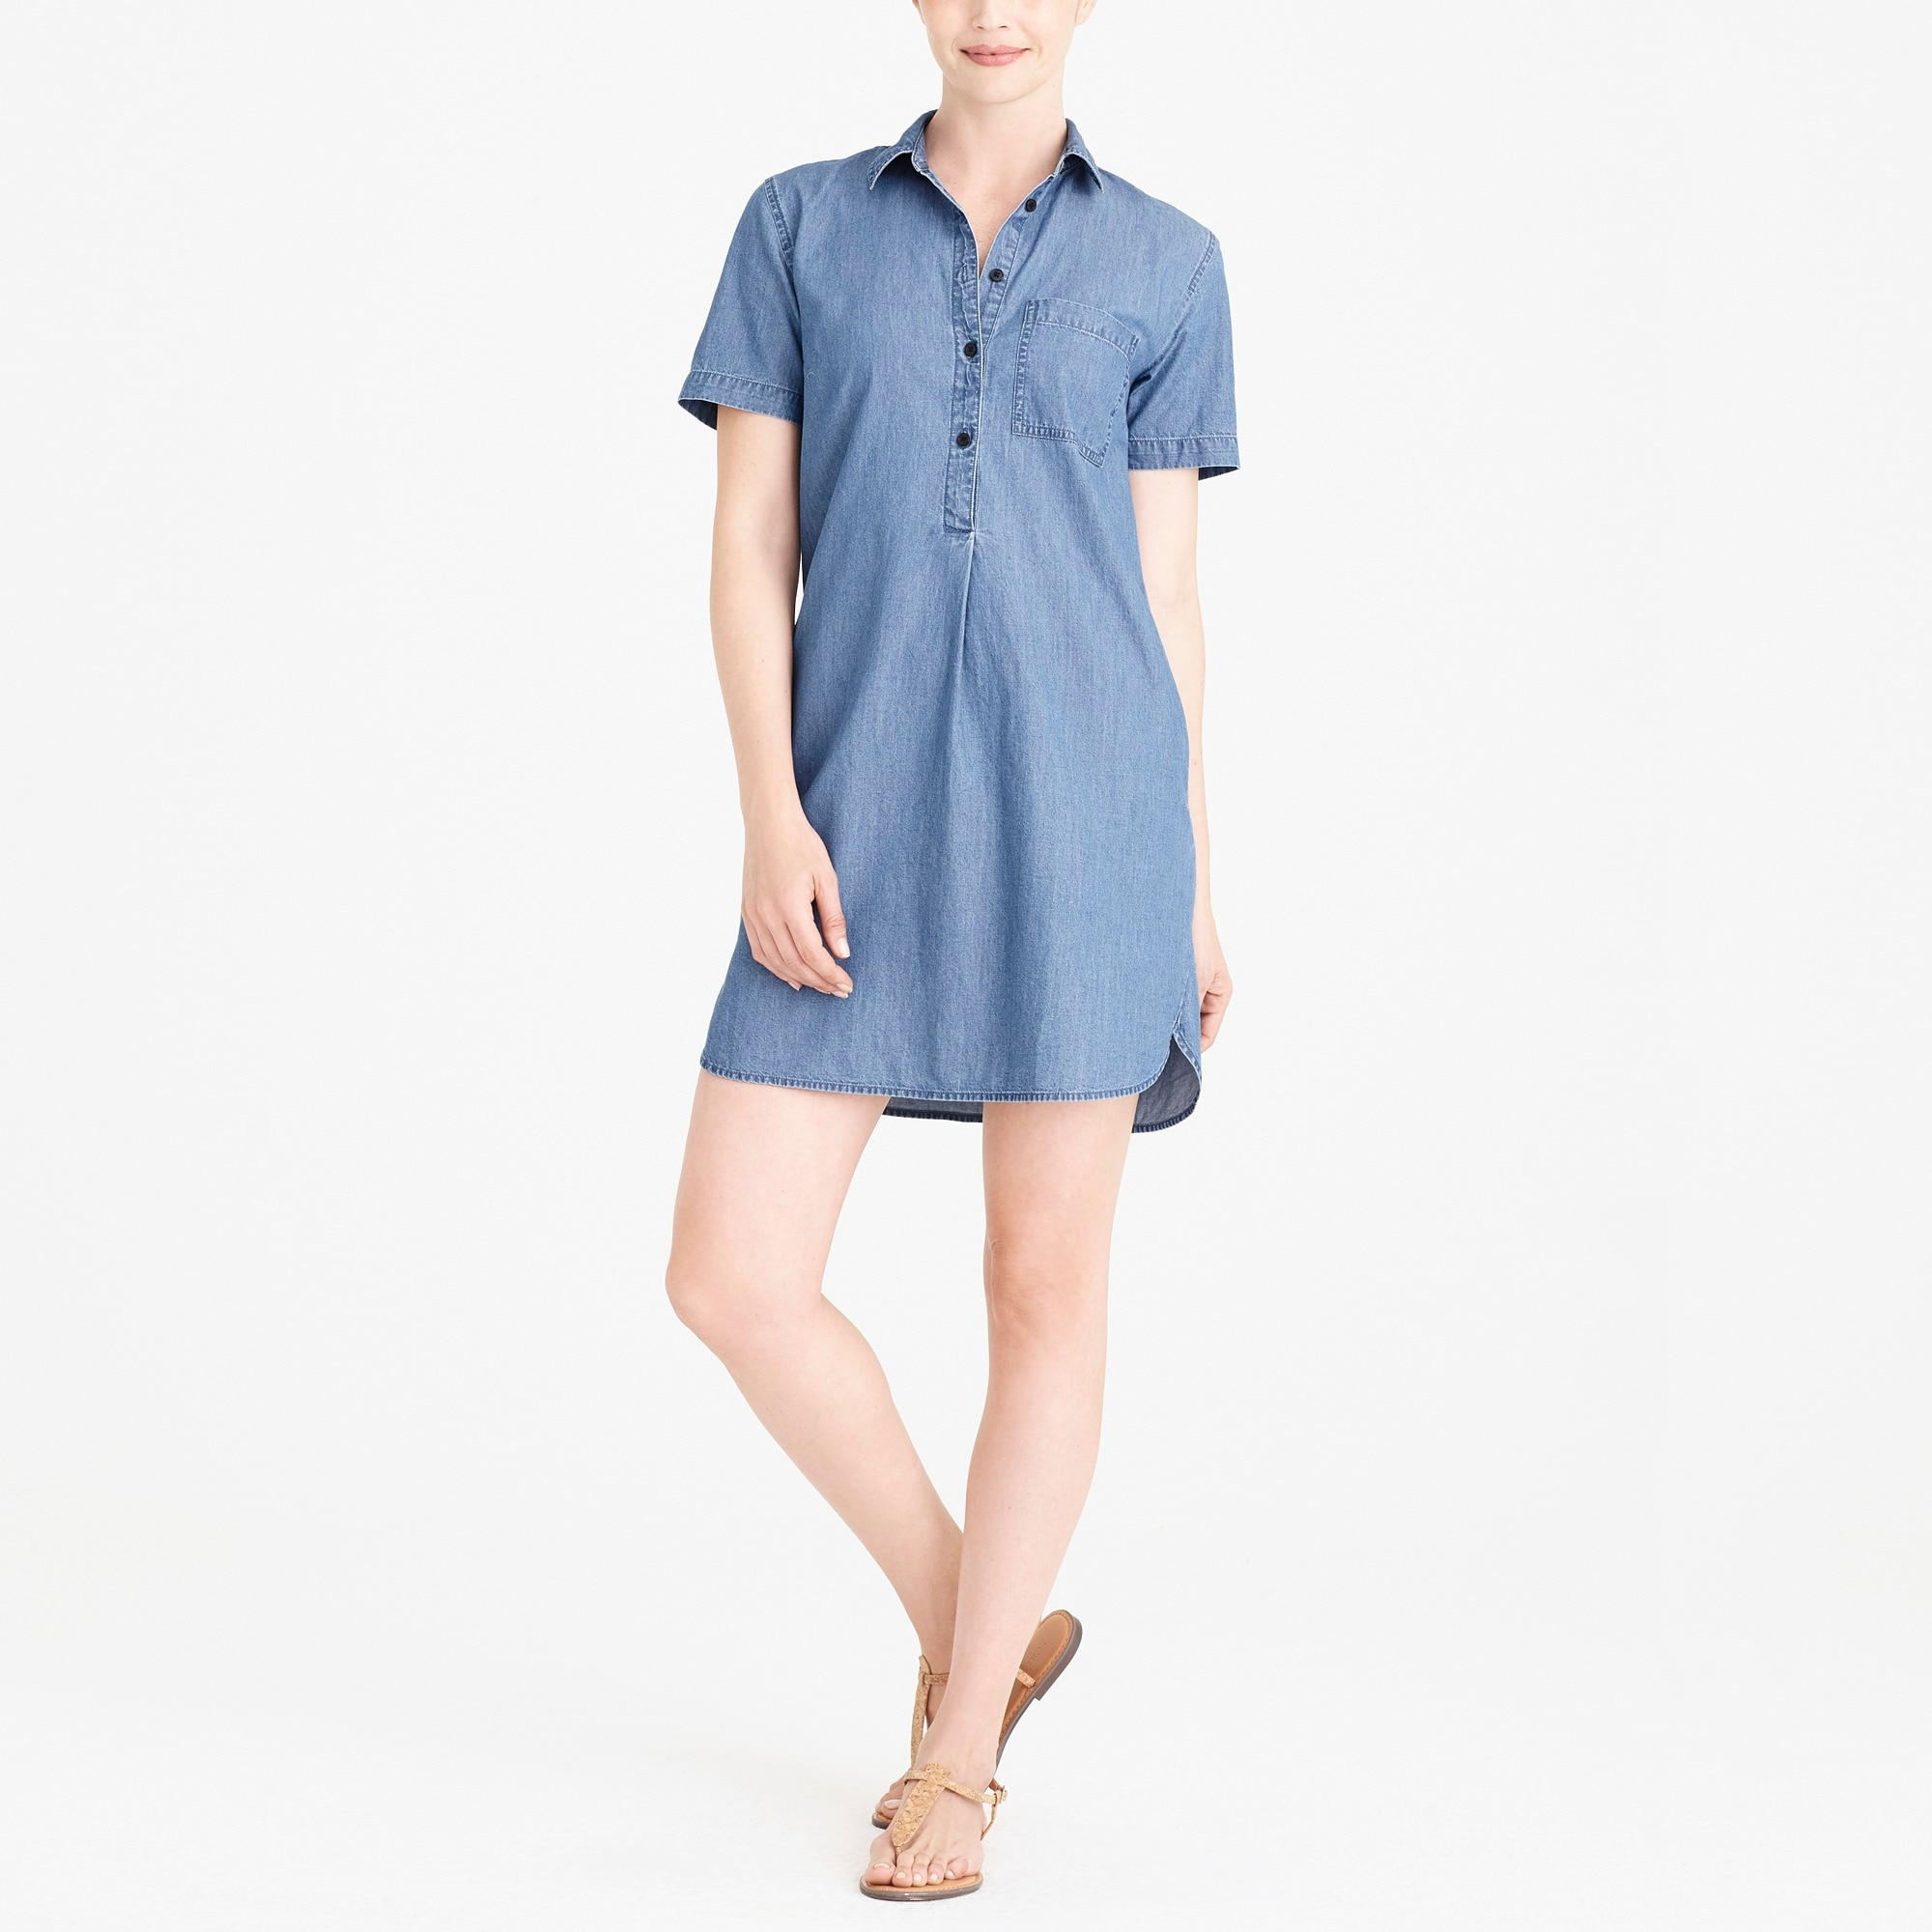 Image 1 for Chambray shirtdress